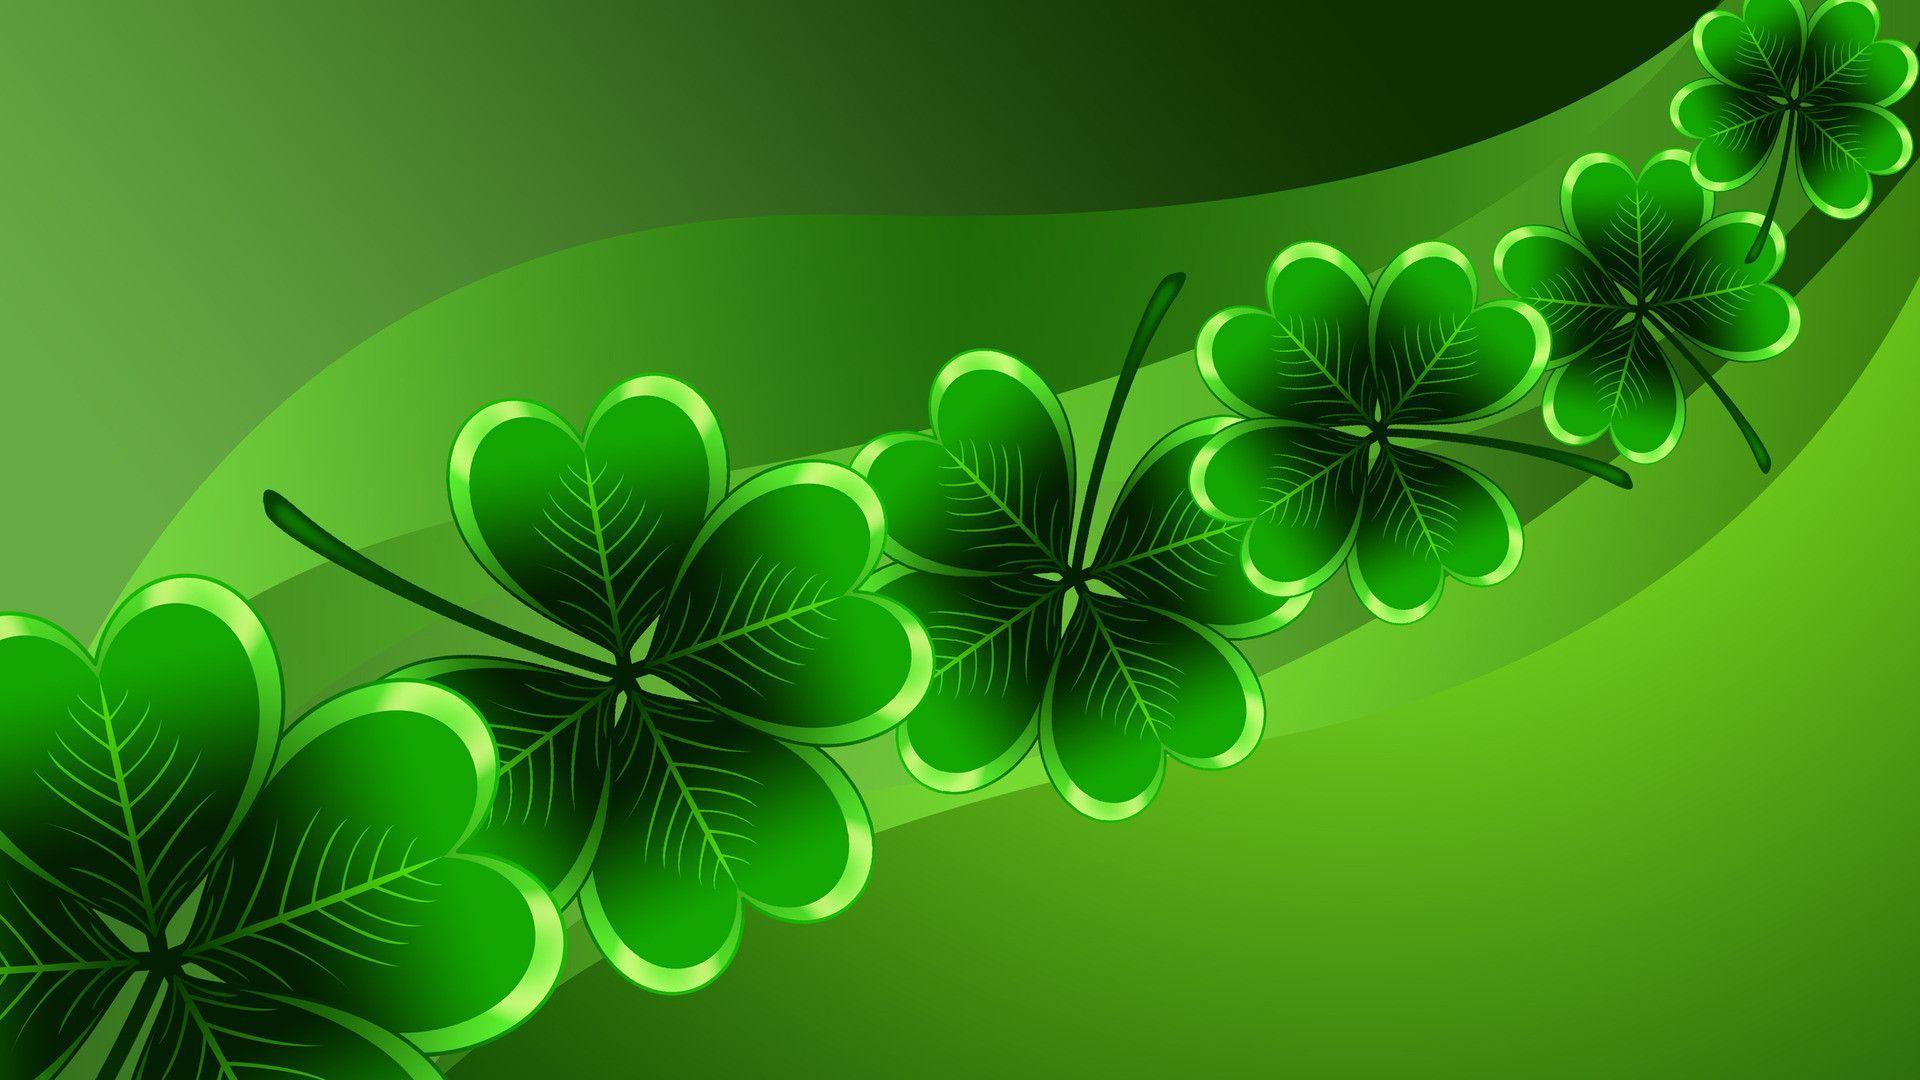 St Patrick Day Wallpapers - Wallpaper Cave